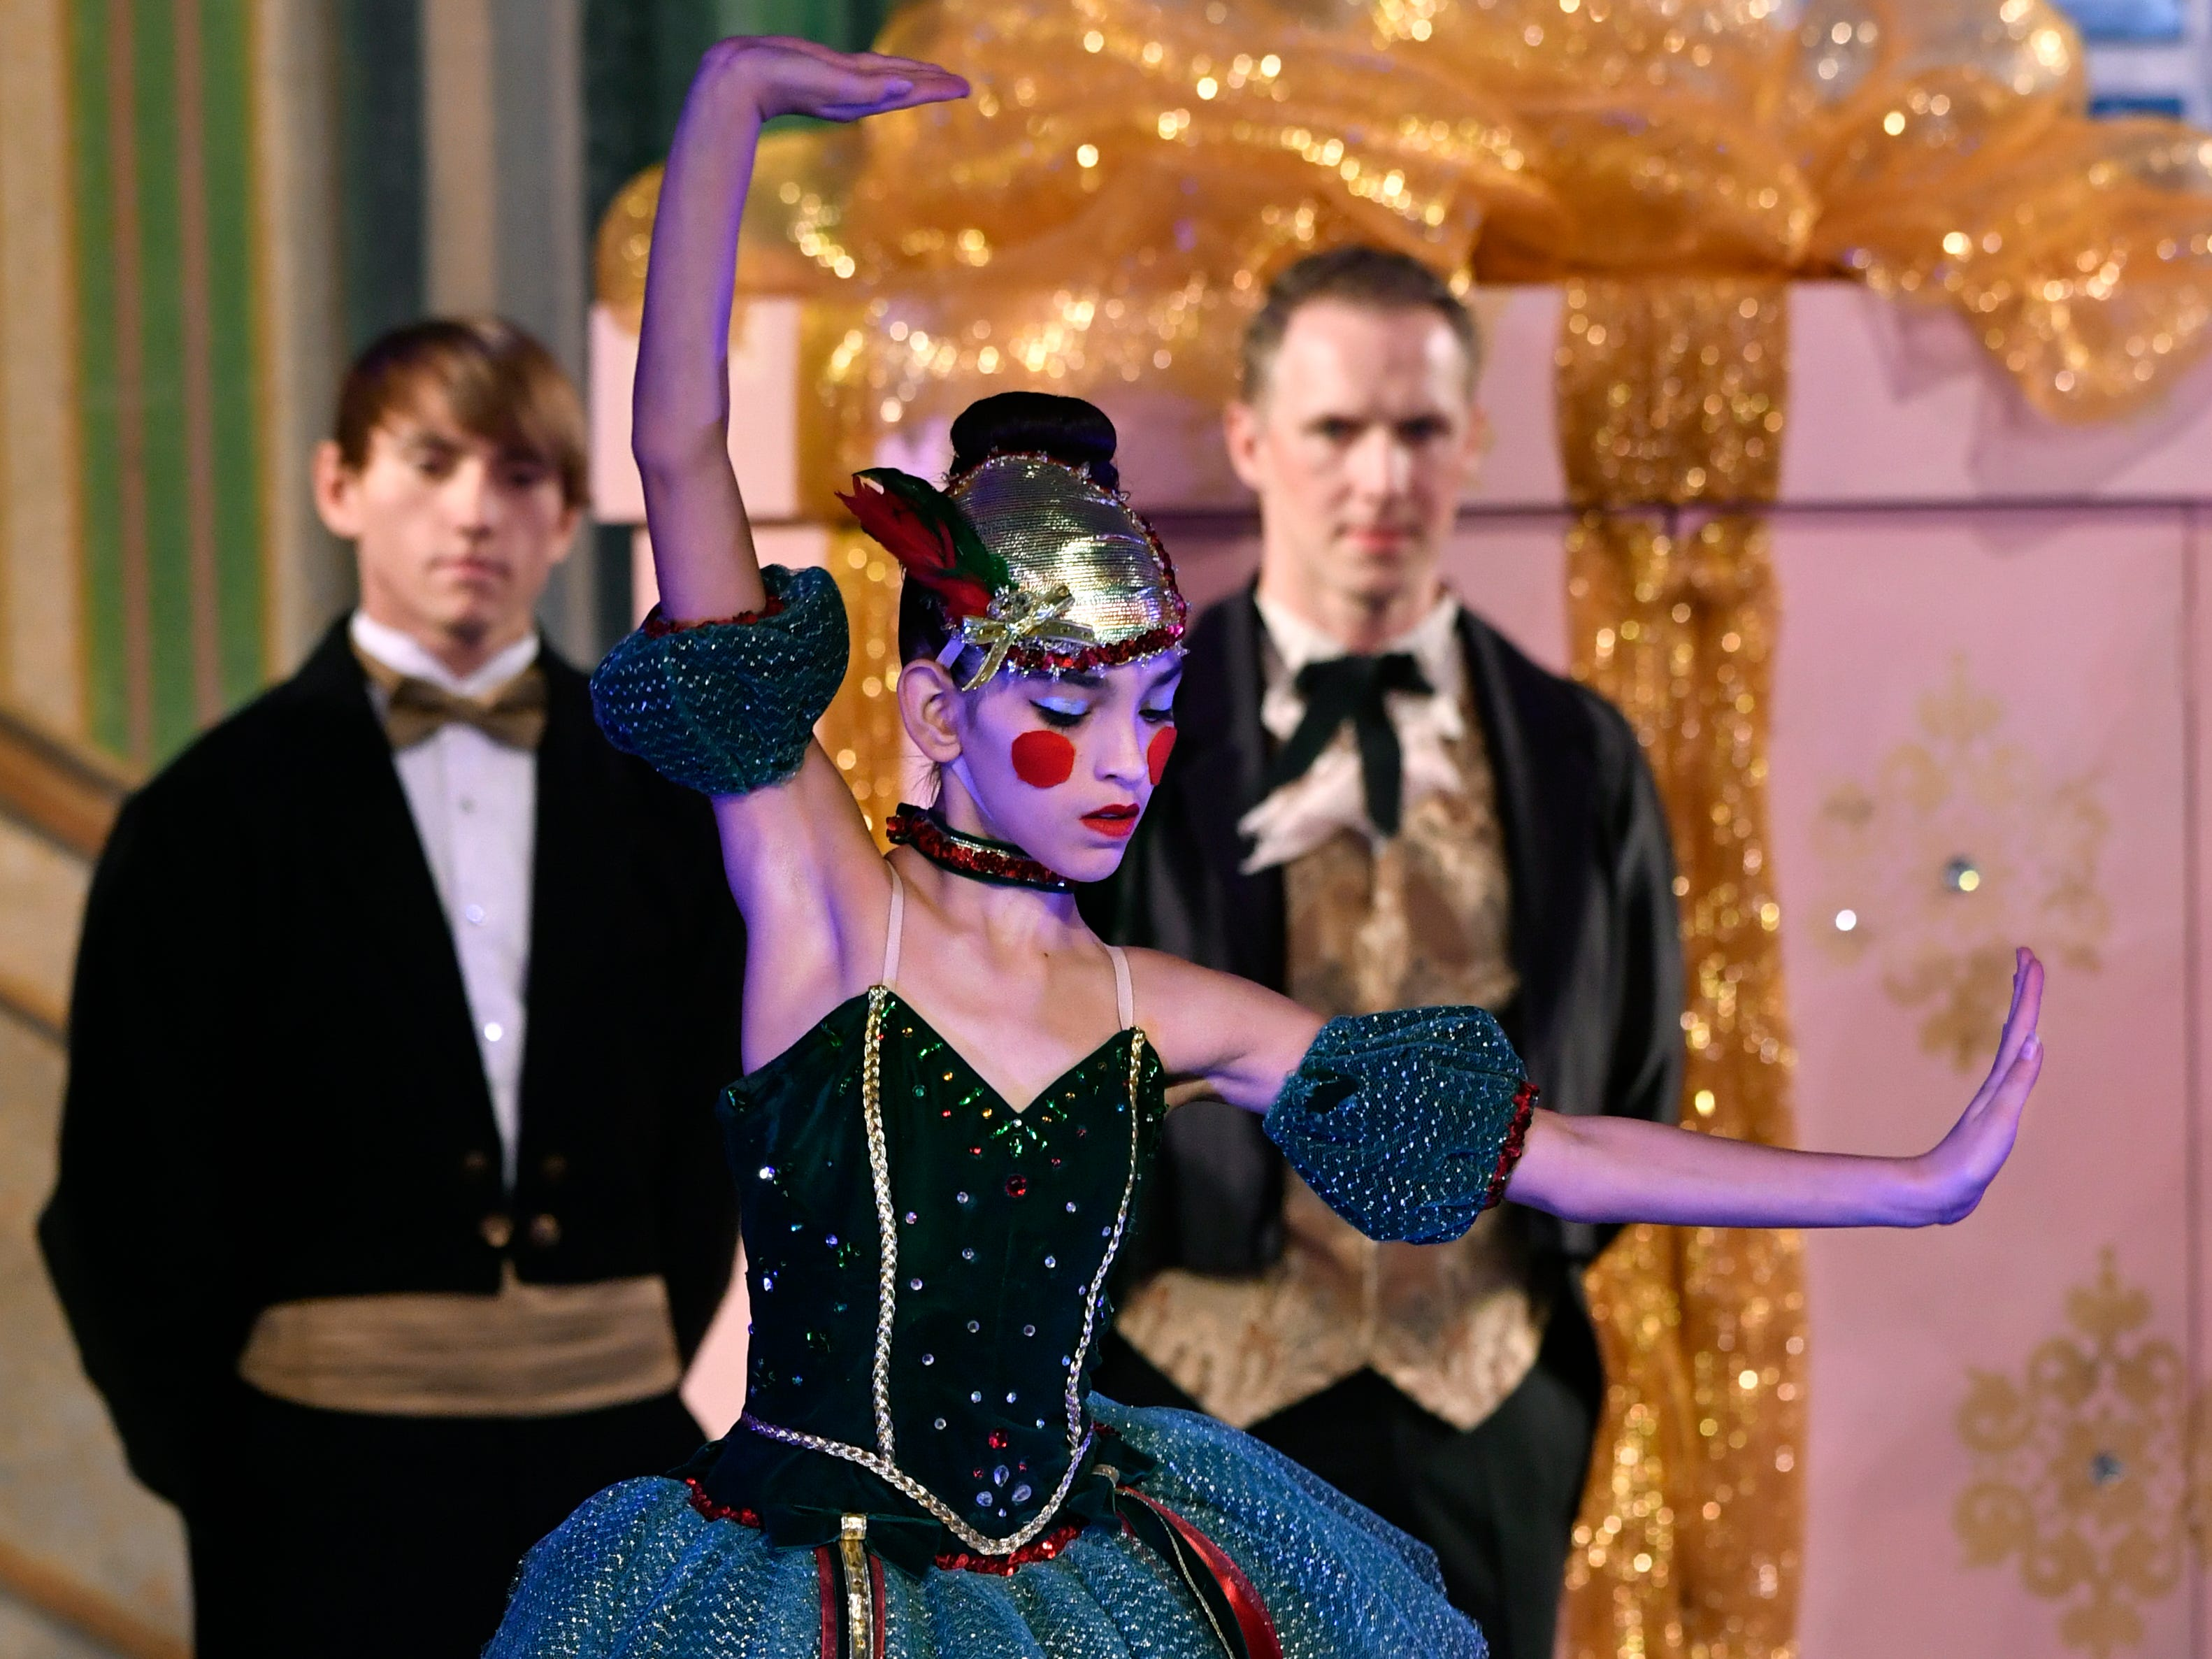 Kaleigh Gann portrays a dancing mechanical doll during the Party Scene in Friday's performance of The Nutcracker for schoolchildren Nov. 15, 2018. This was the 31st year for the Abilene Ballet Theatre production, held at the Paramount Theatre.